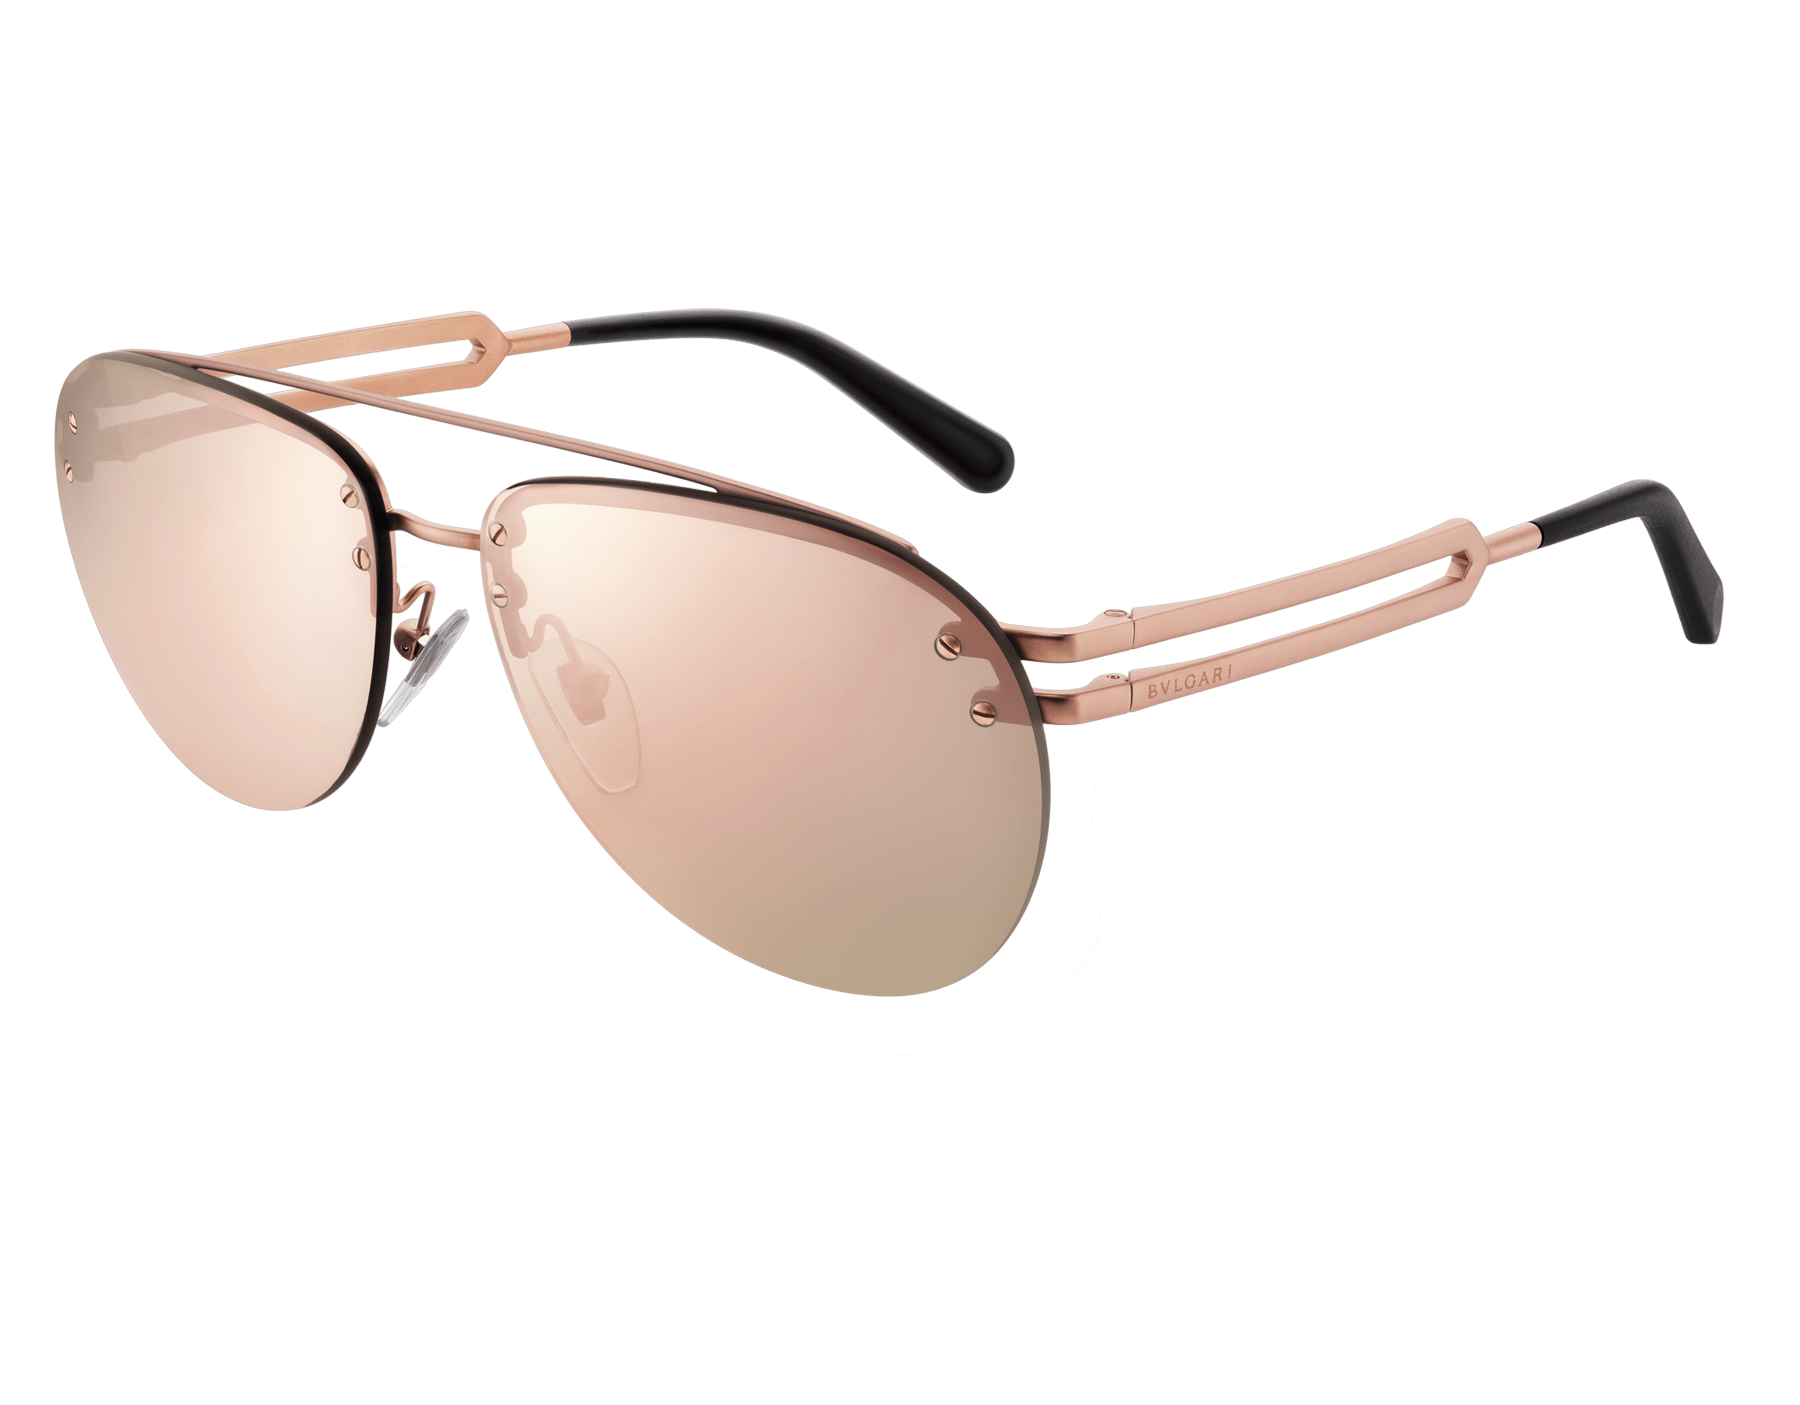 Bvlgari Bvlgari metal double bridge aviator sunglasses. 904043 image 1